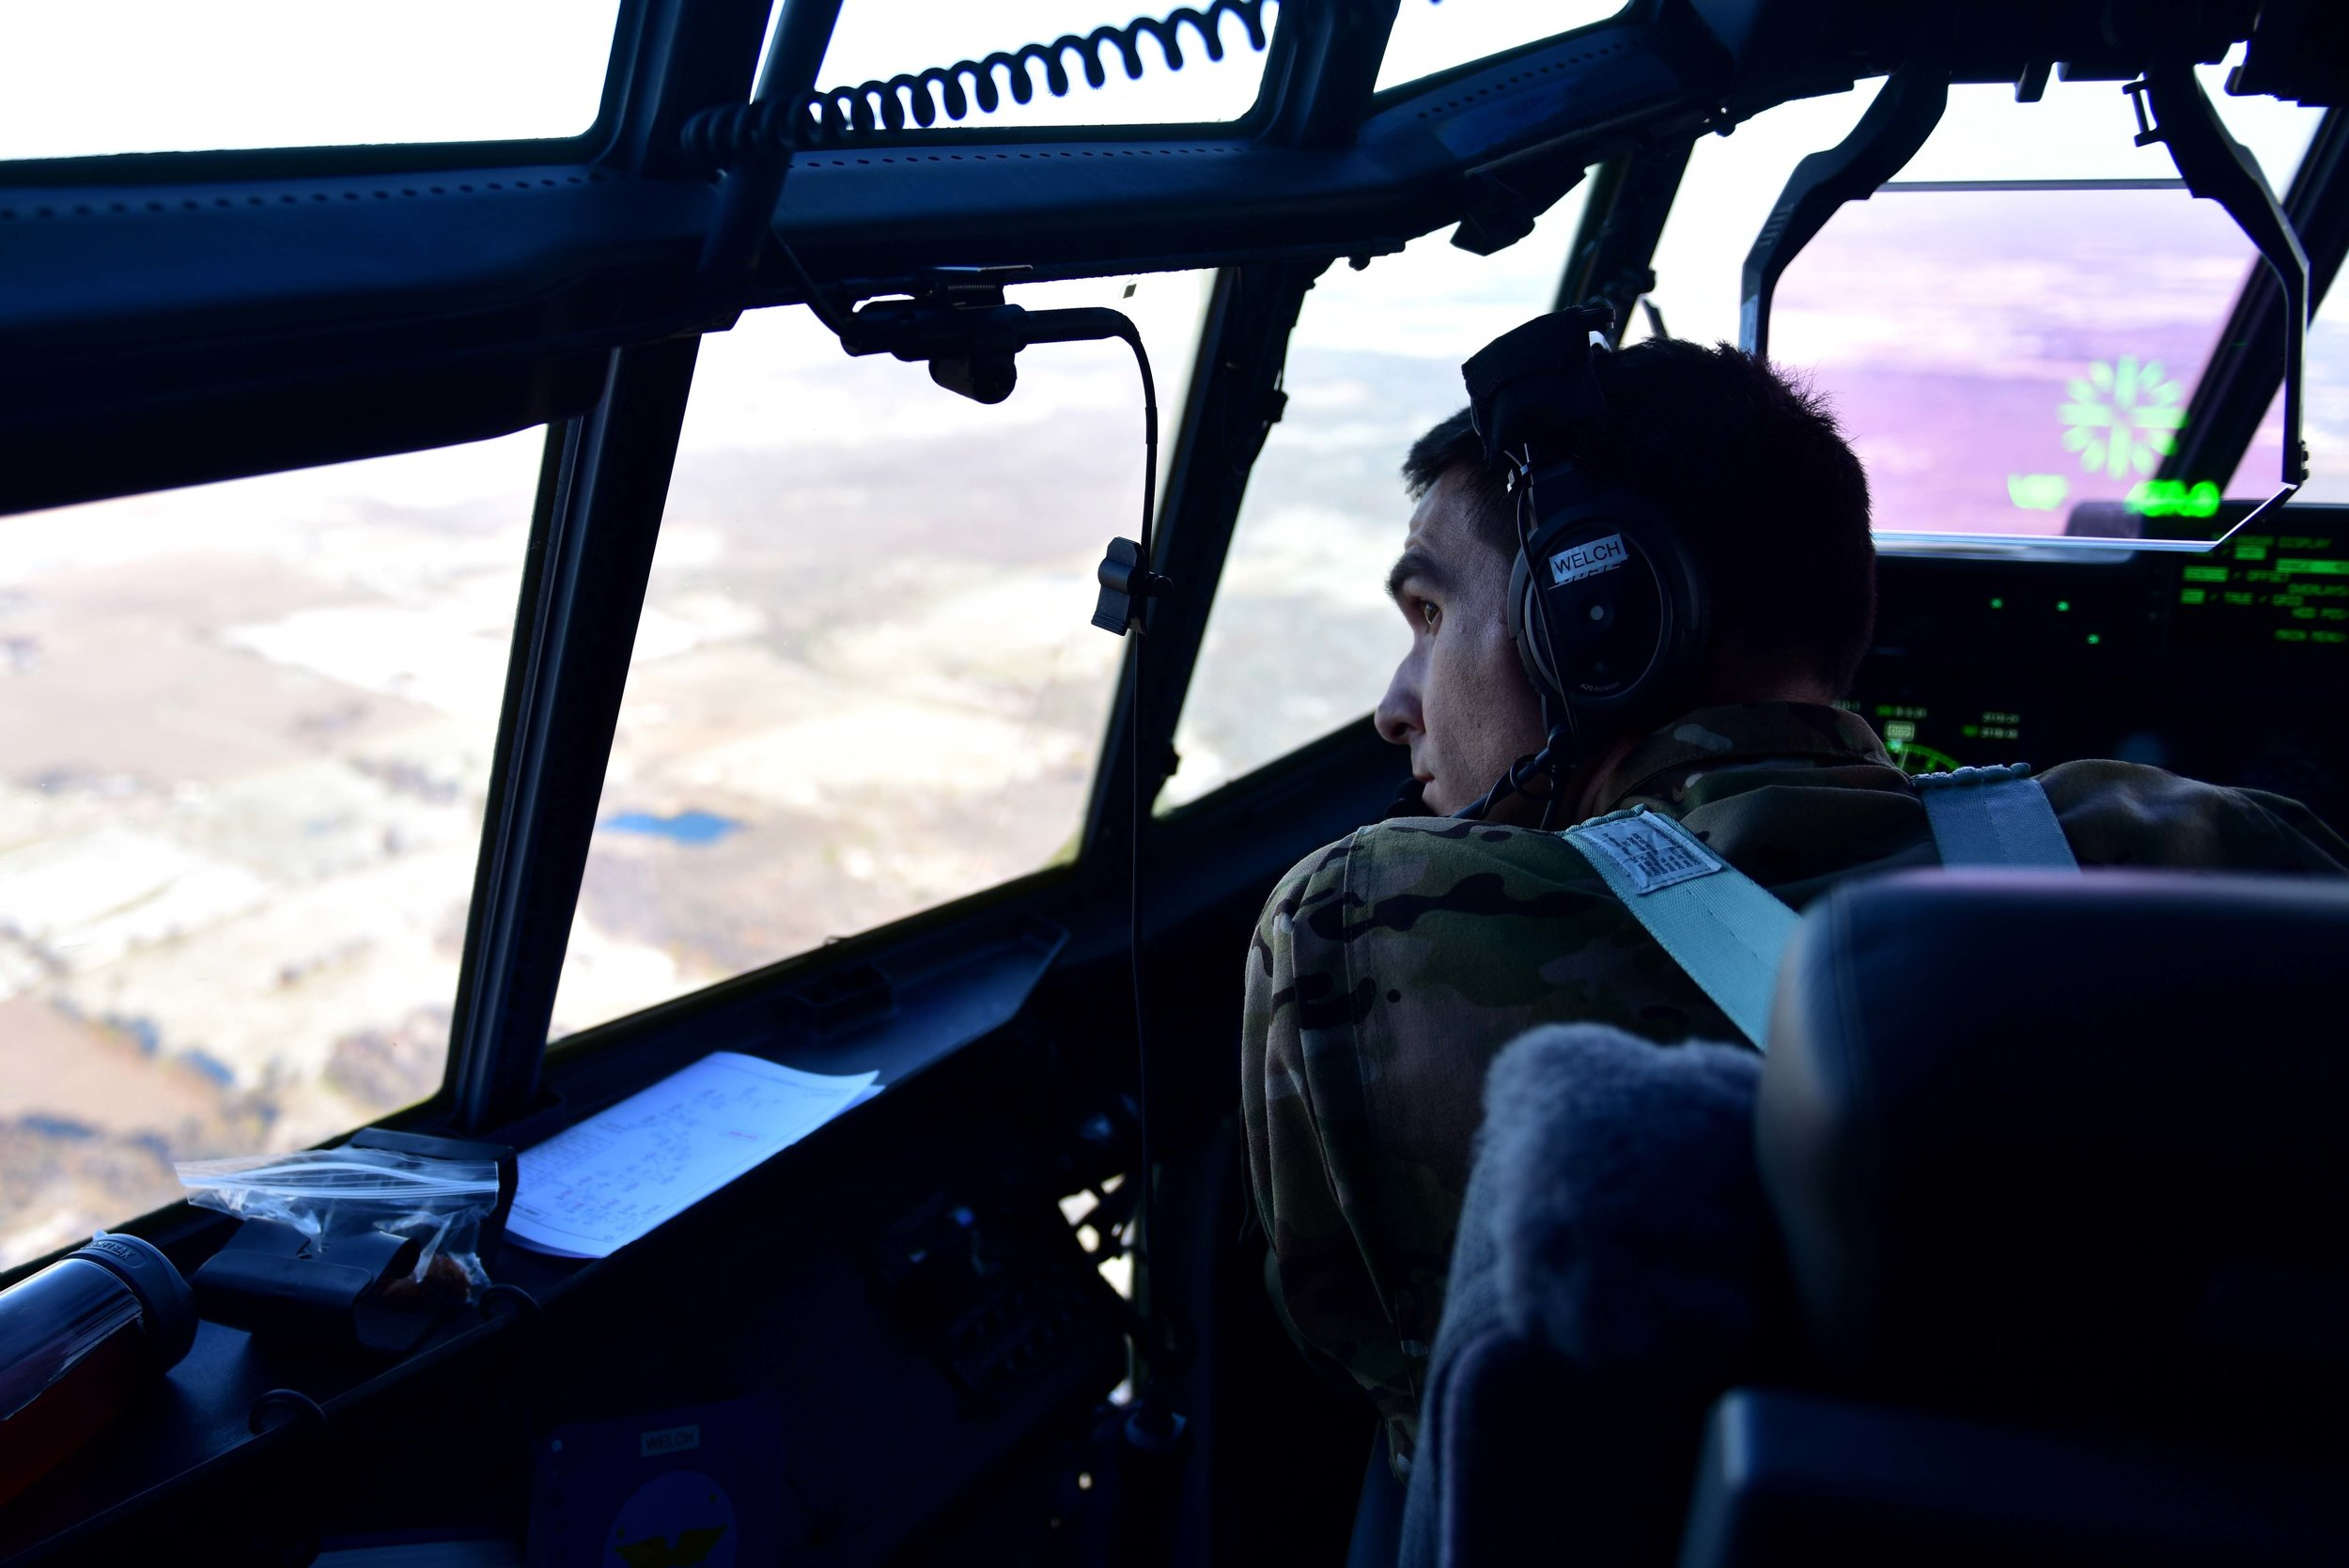 """U.S. Air Force Lt. Col. Christopher Welch, 19th Operations Support Squadron commander, looks out the window of a C-130J while flying over Little Rock Air Force Base, Ark., Nov. 14, 2018. Using Augmented Reality/Virtual Reality (AR/VR) tools, aircrew could soon be able to train on cockpit radio set-up and procedures with real-world tactical air-control personnel """"on the ground,"""" without having to take flight themselves. Photo by Airman 1st Class Kristine M. Gruwell"""